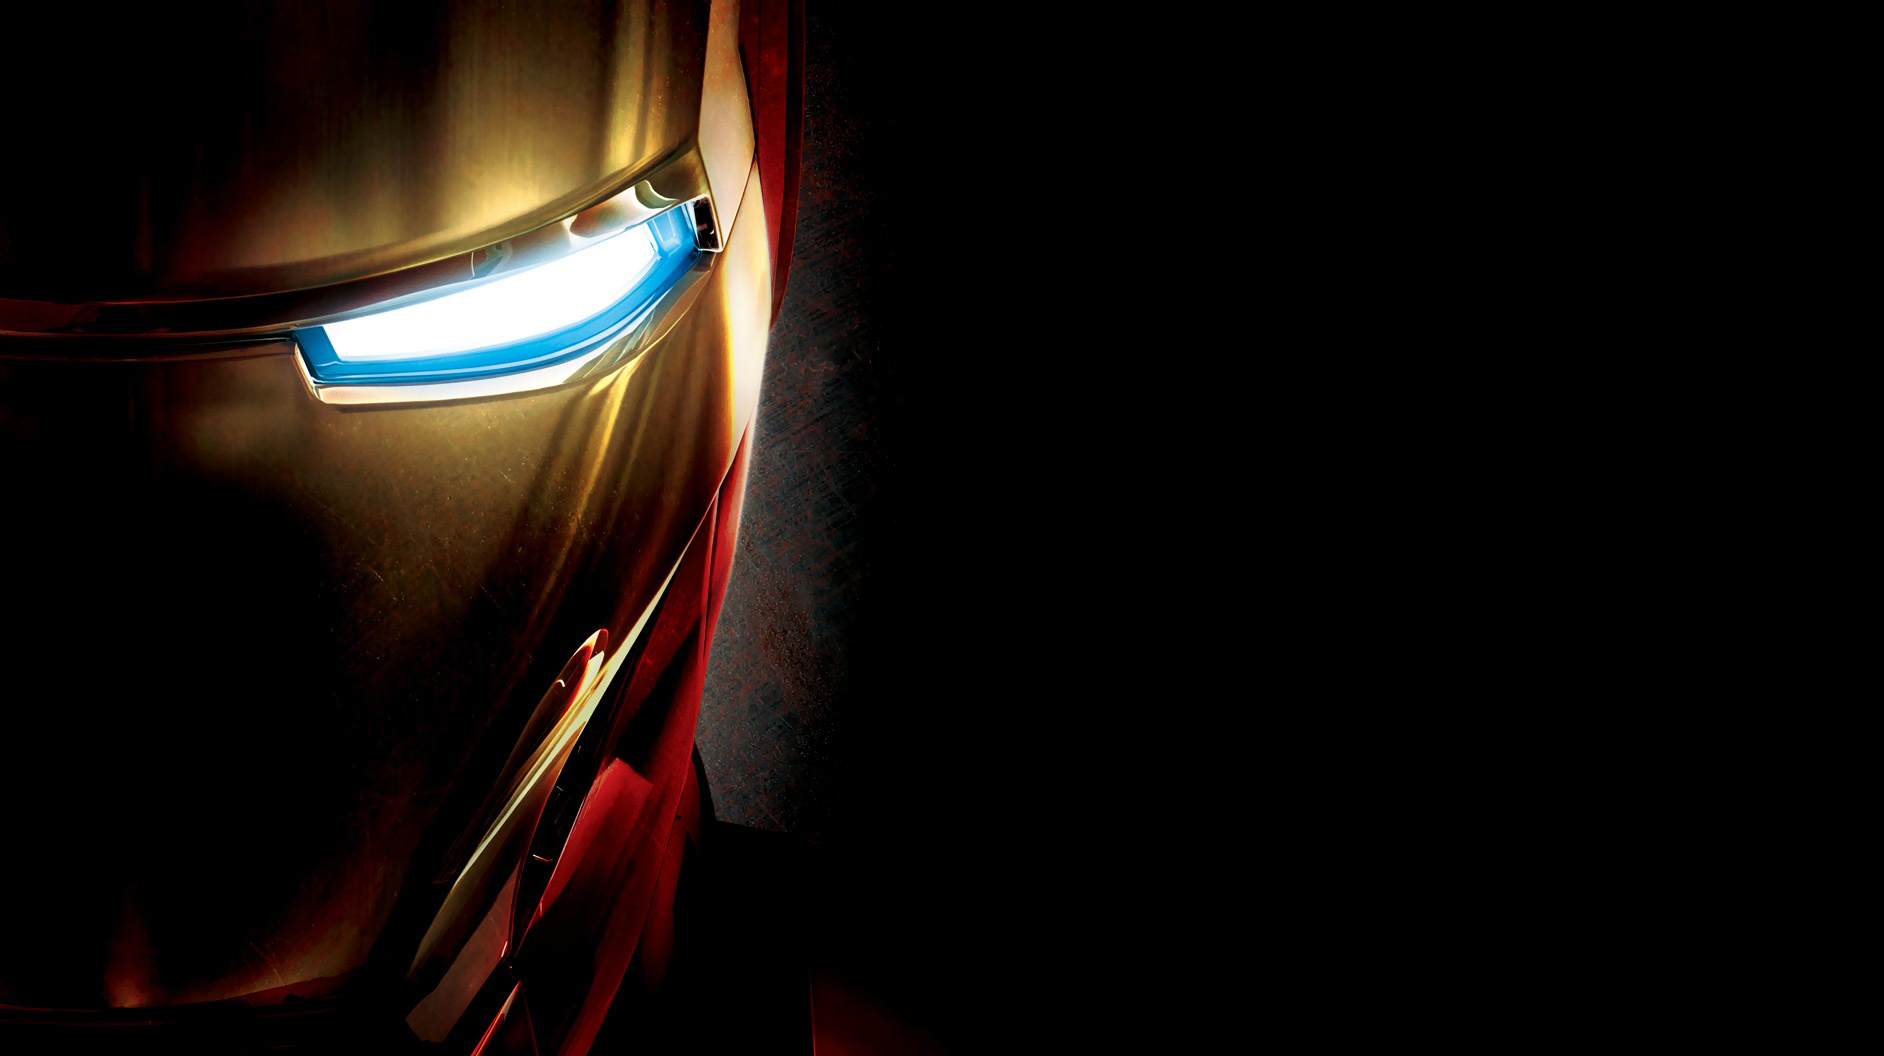 iron_man_eye-wallpaper 4k